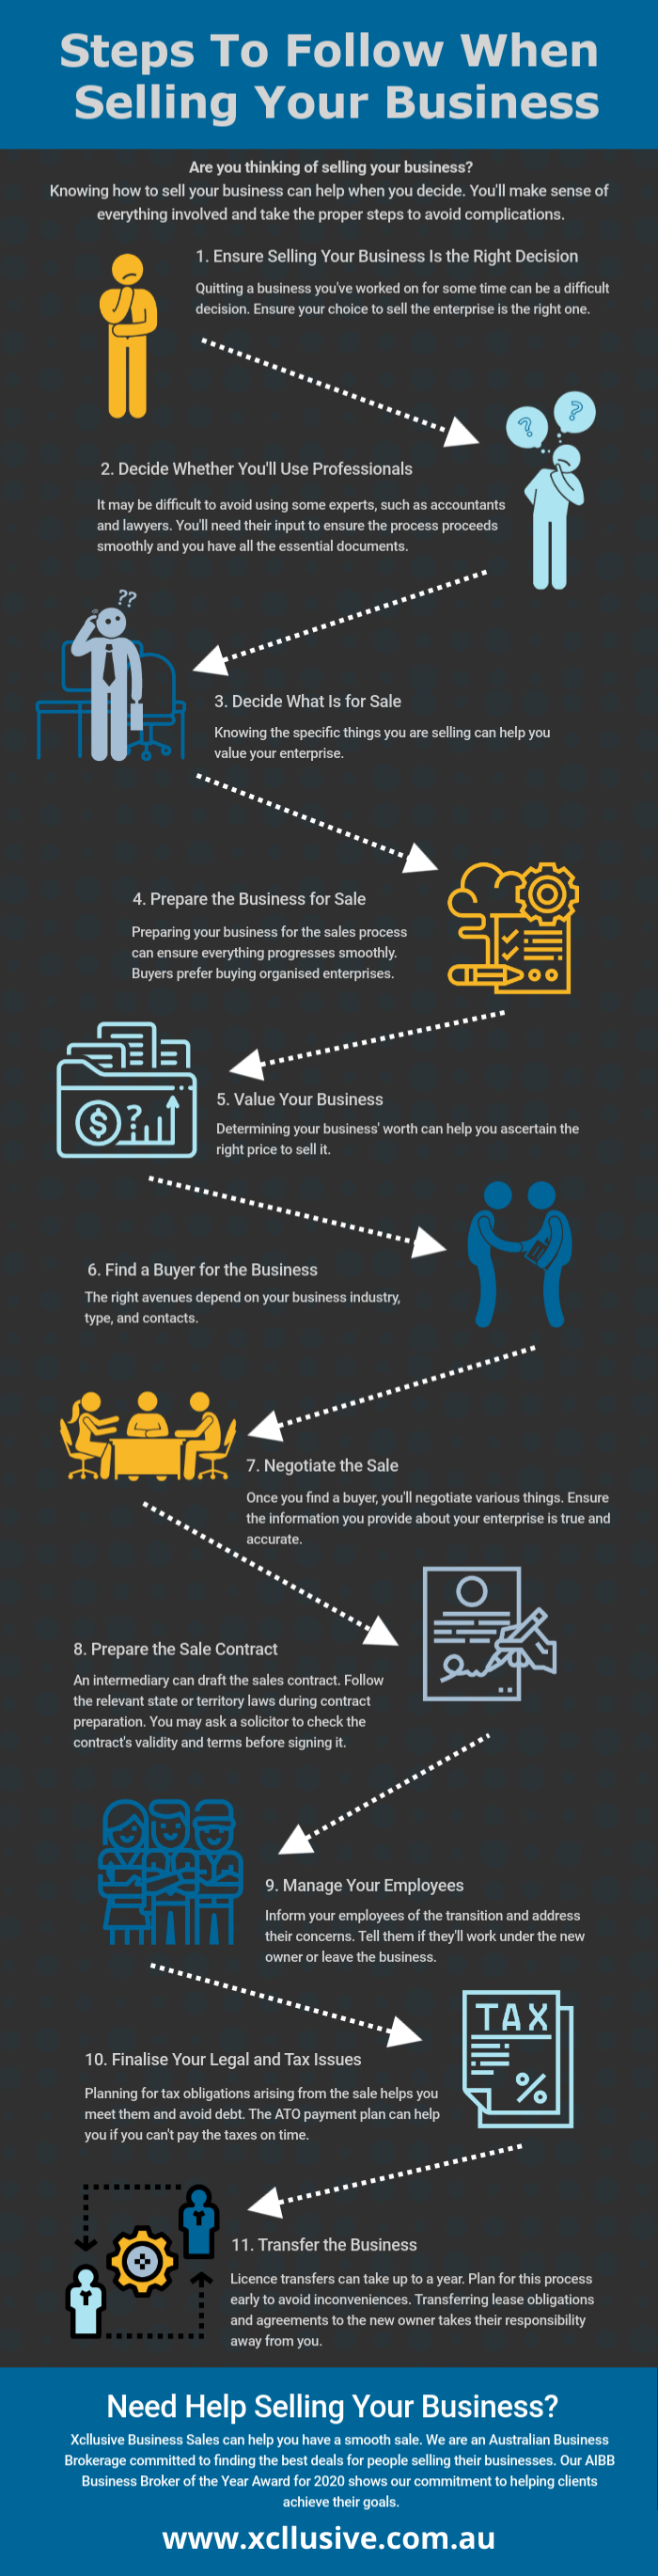 How To Sell Your Business Infographic